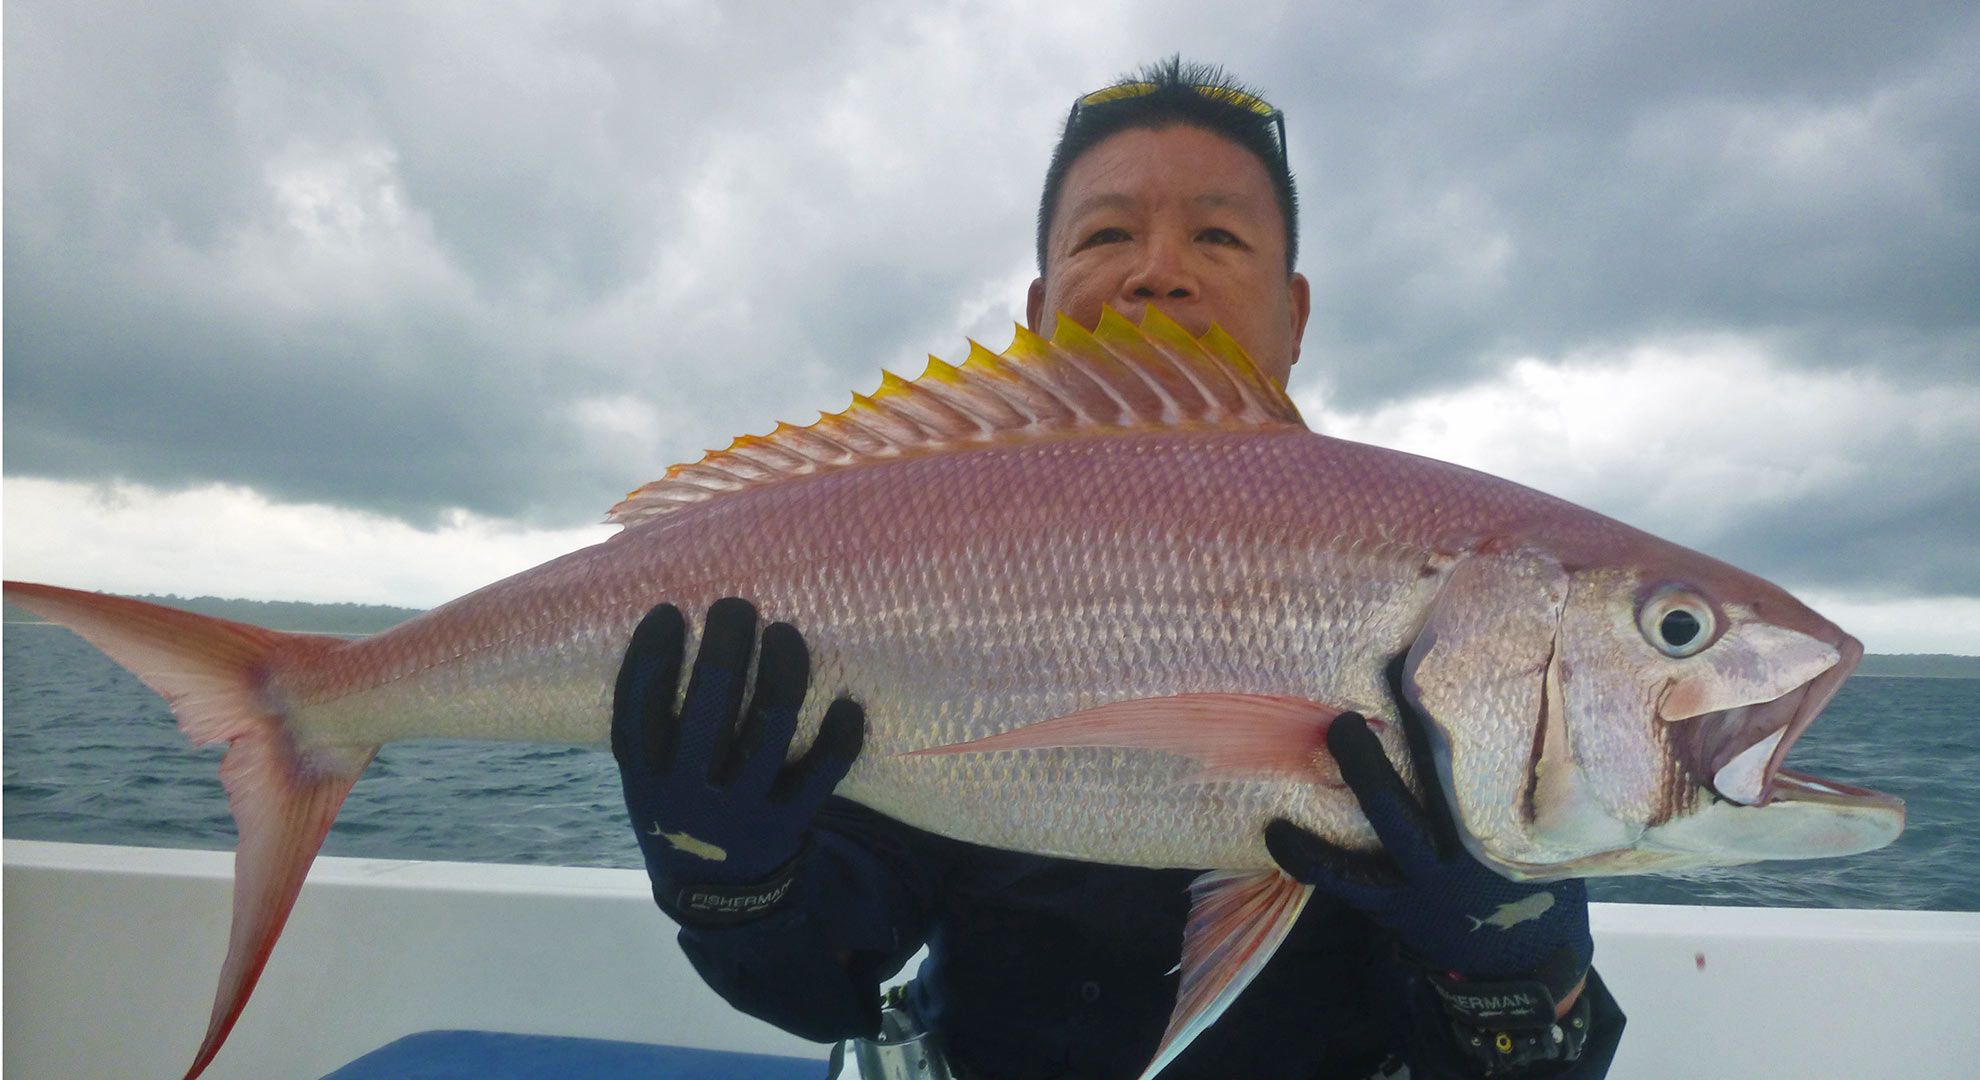 No.4_Rusty-jobfish_fishing_jgging_andaman_shimano-stella_gamefishingasia_boat_big-fish_gtpopping_boat-charter